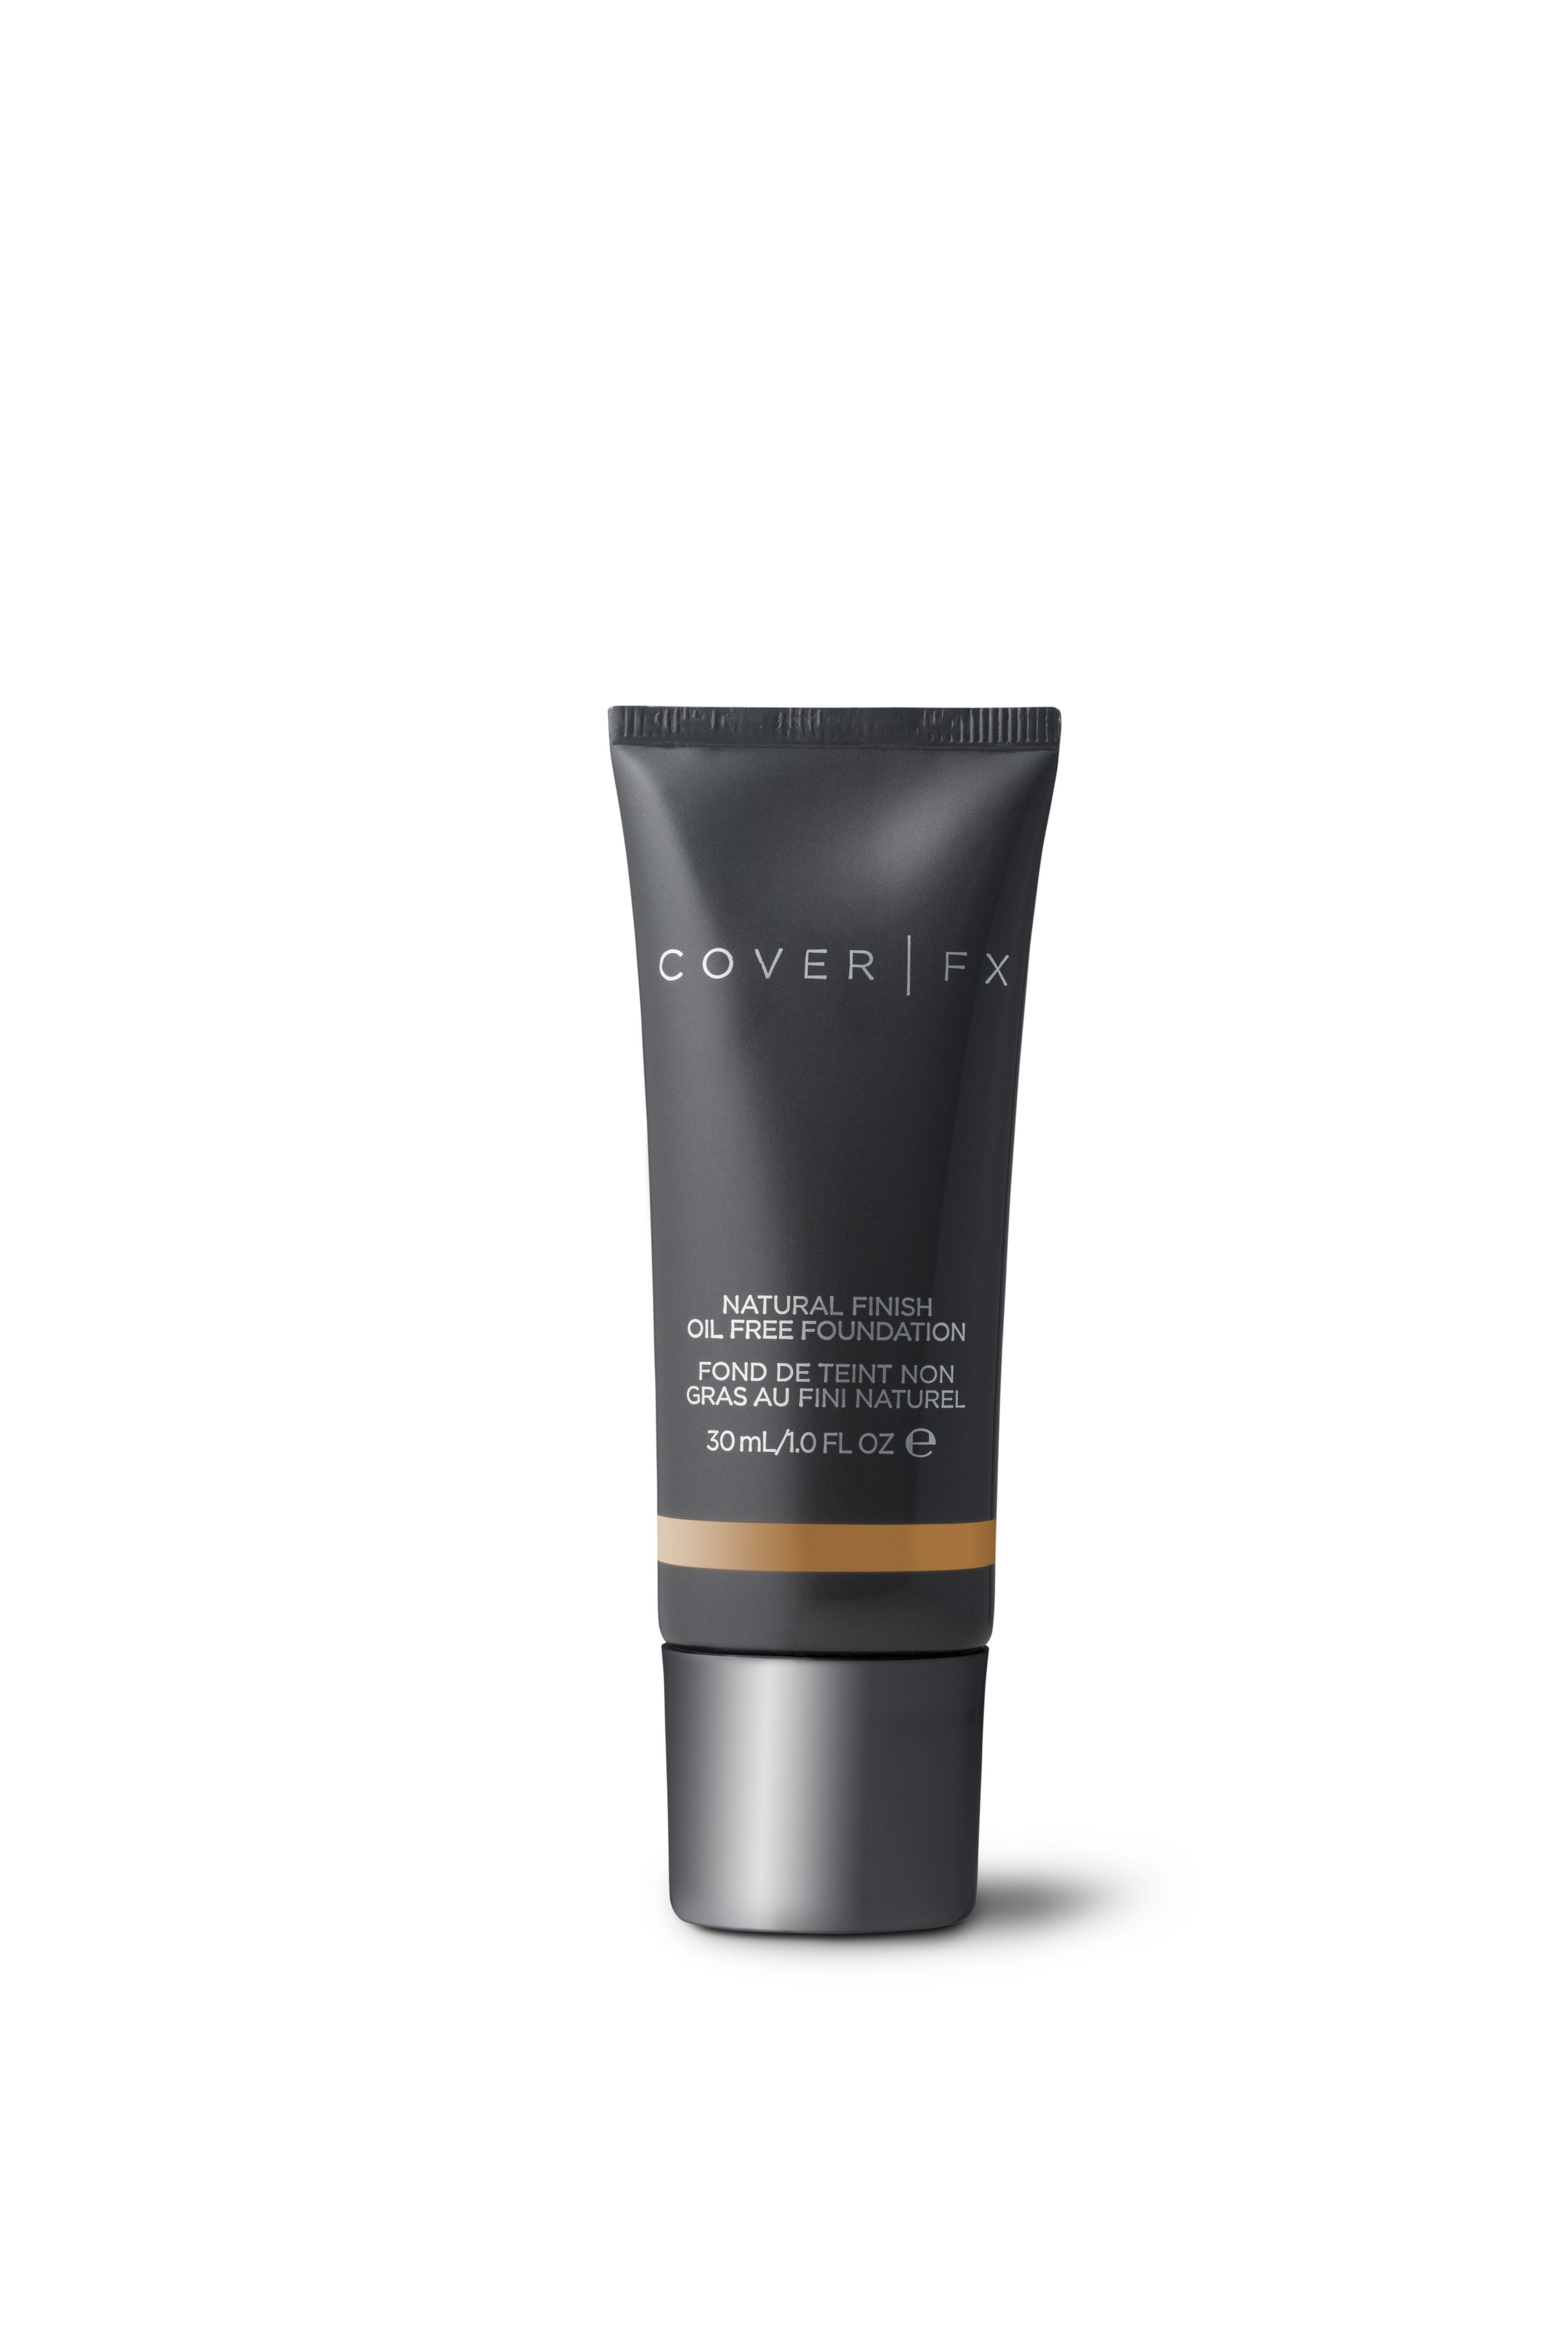 Cover FX Cover FX Natural Finish Oil-Free Foundation 30ml, G90